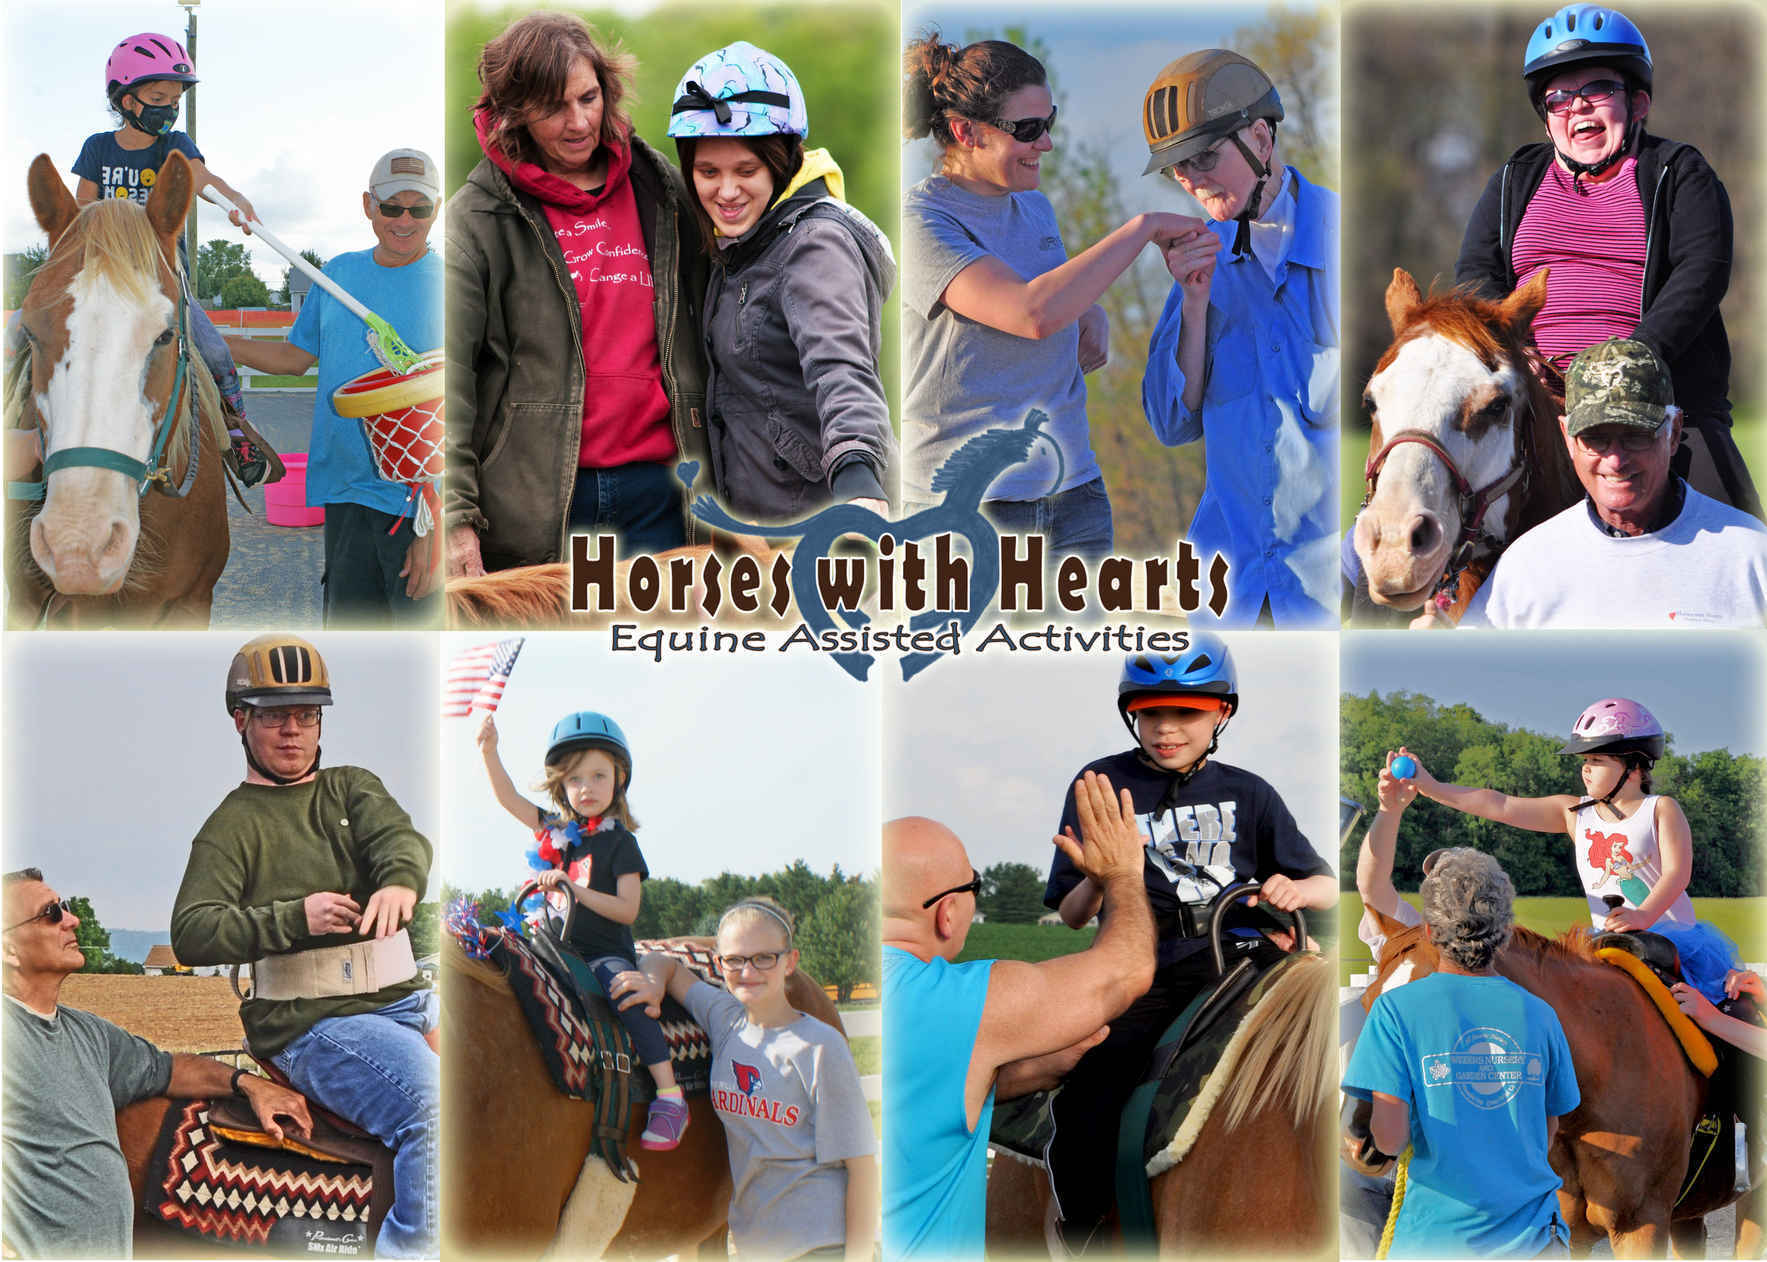 Horses with Hearts Equine Assisted Activities image